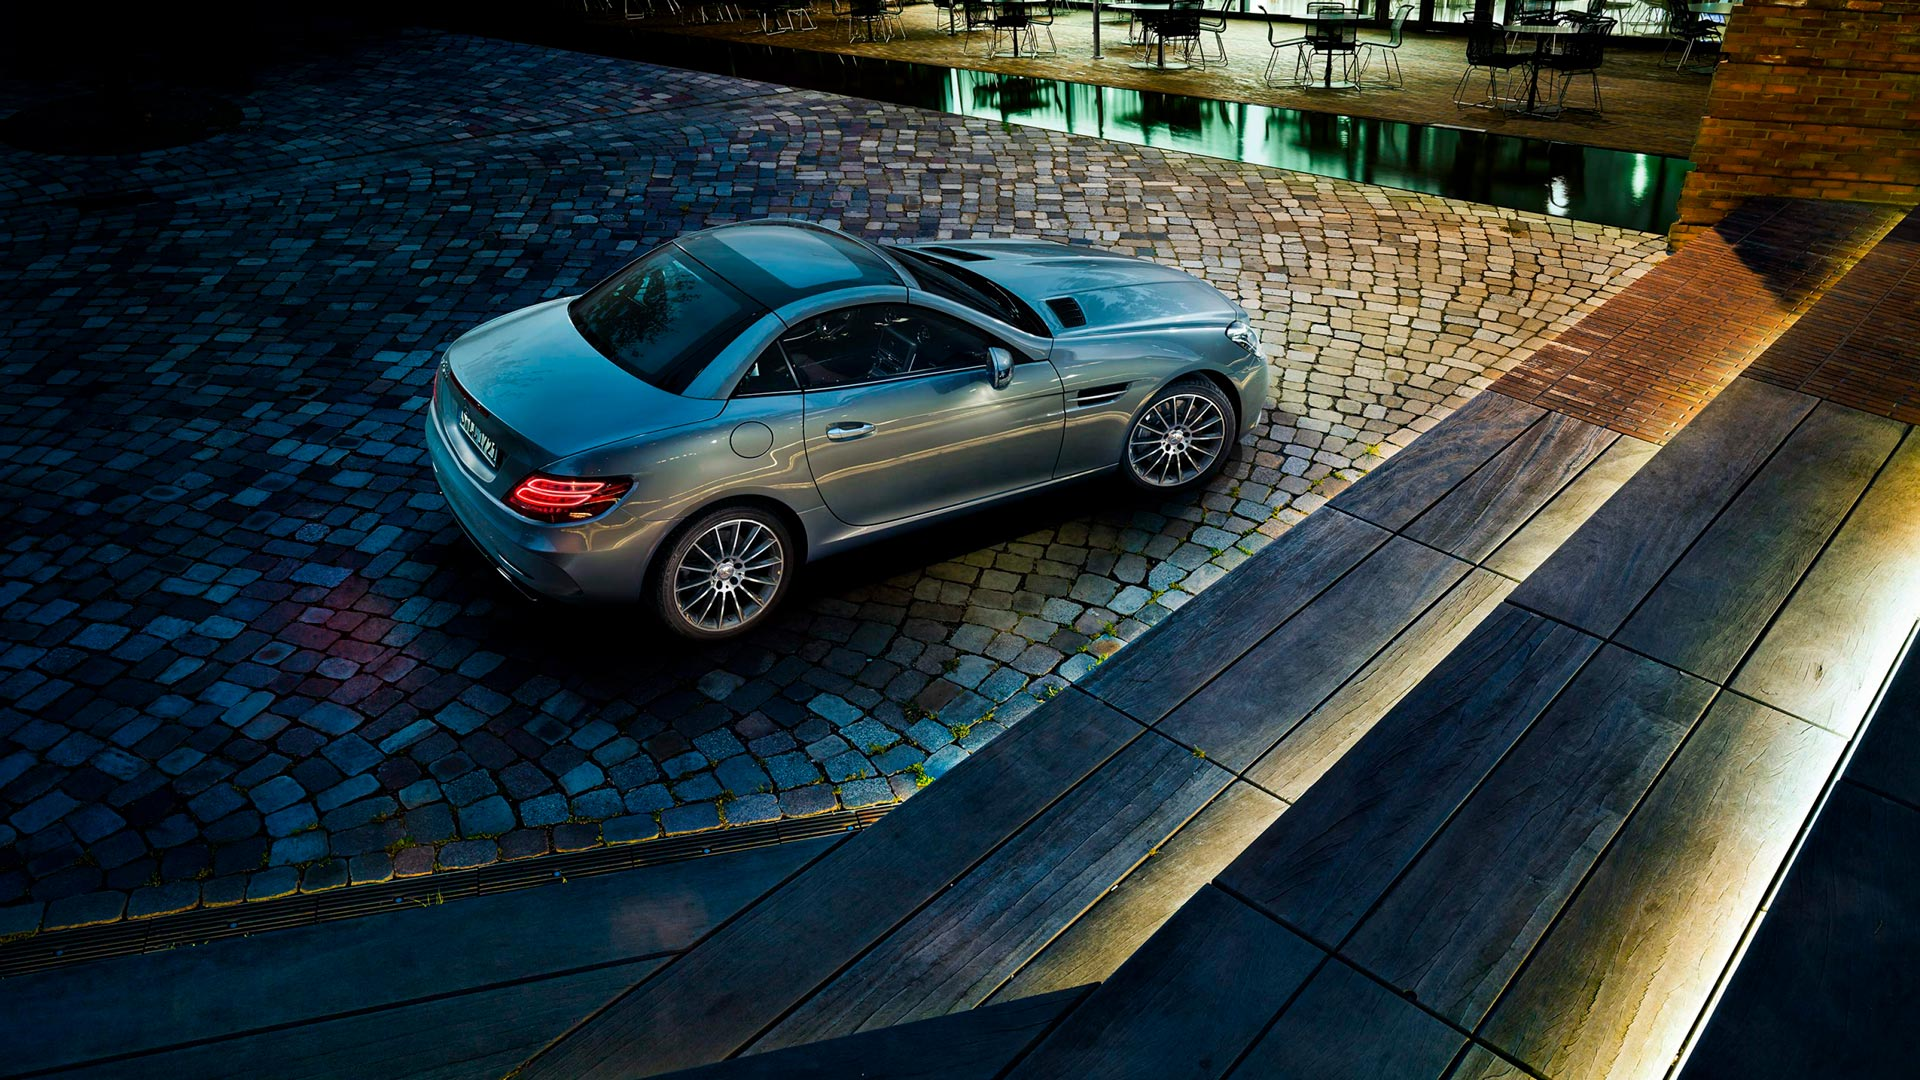 Новый Mercedes-Benz SLC родстер панорамний дах